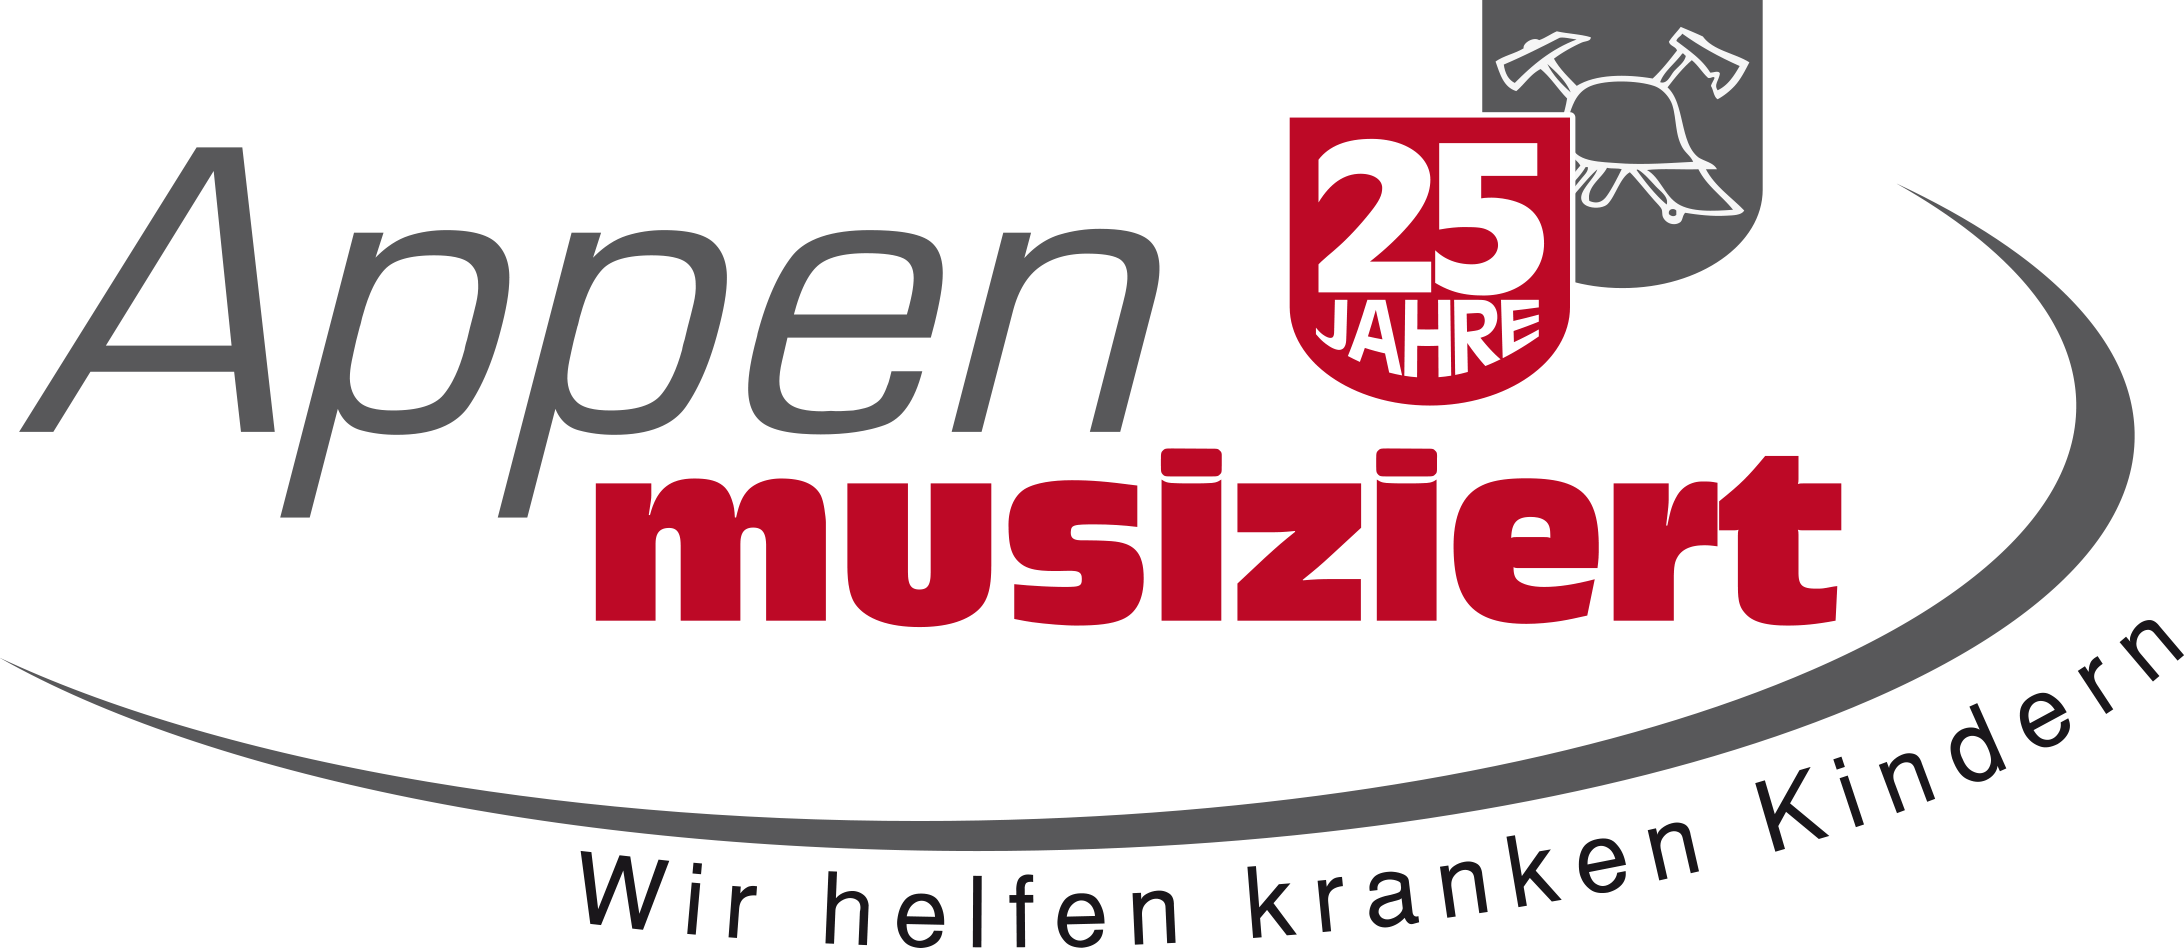 Appen Musiziert am 20. September